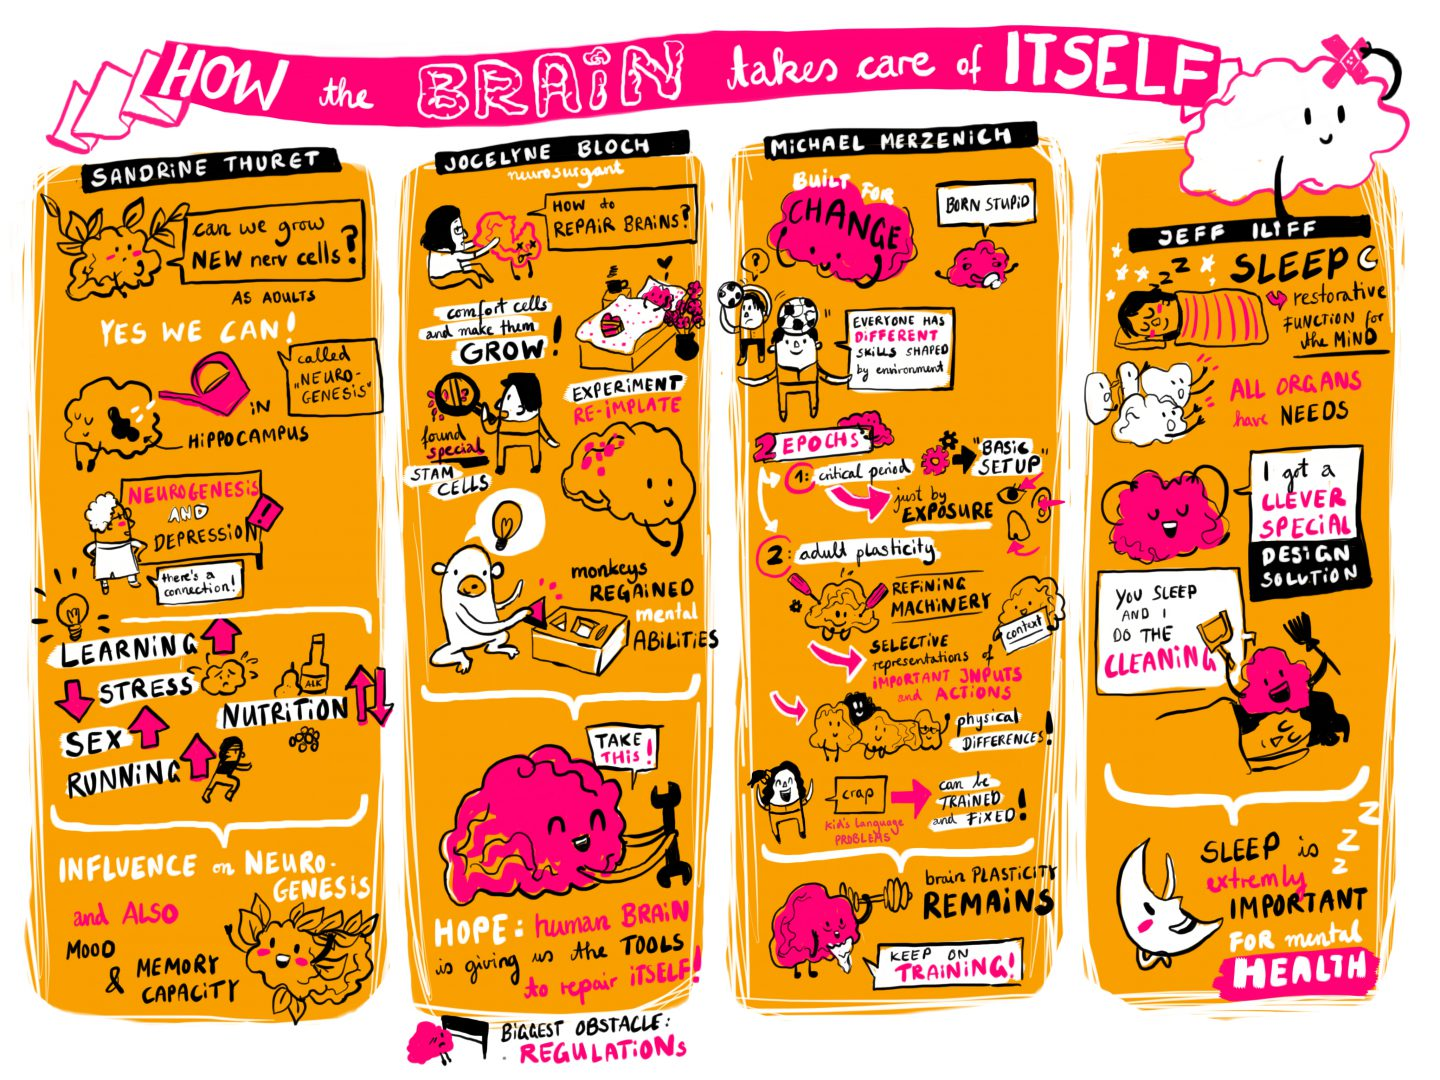 Graphic Recording Brain care